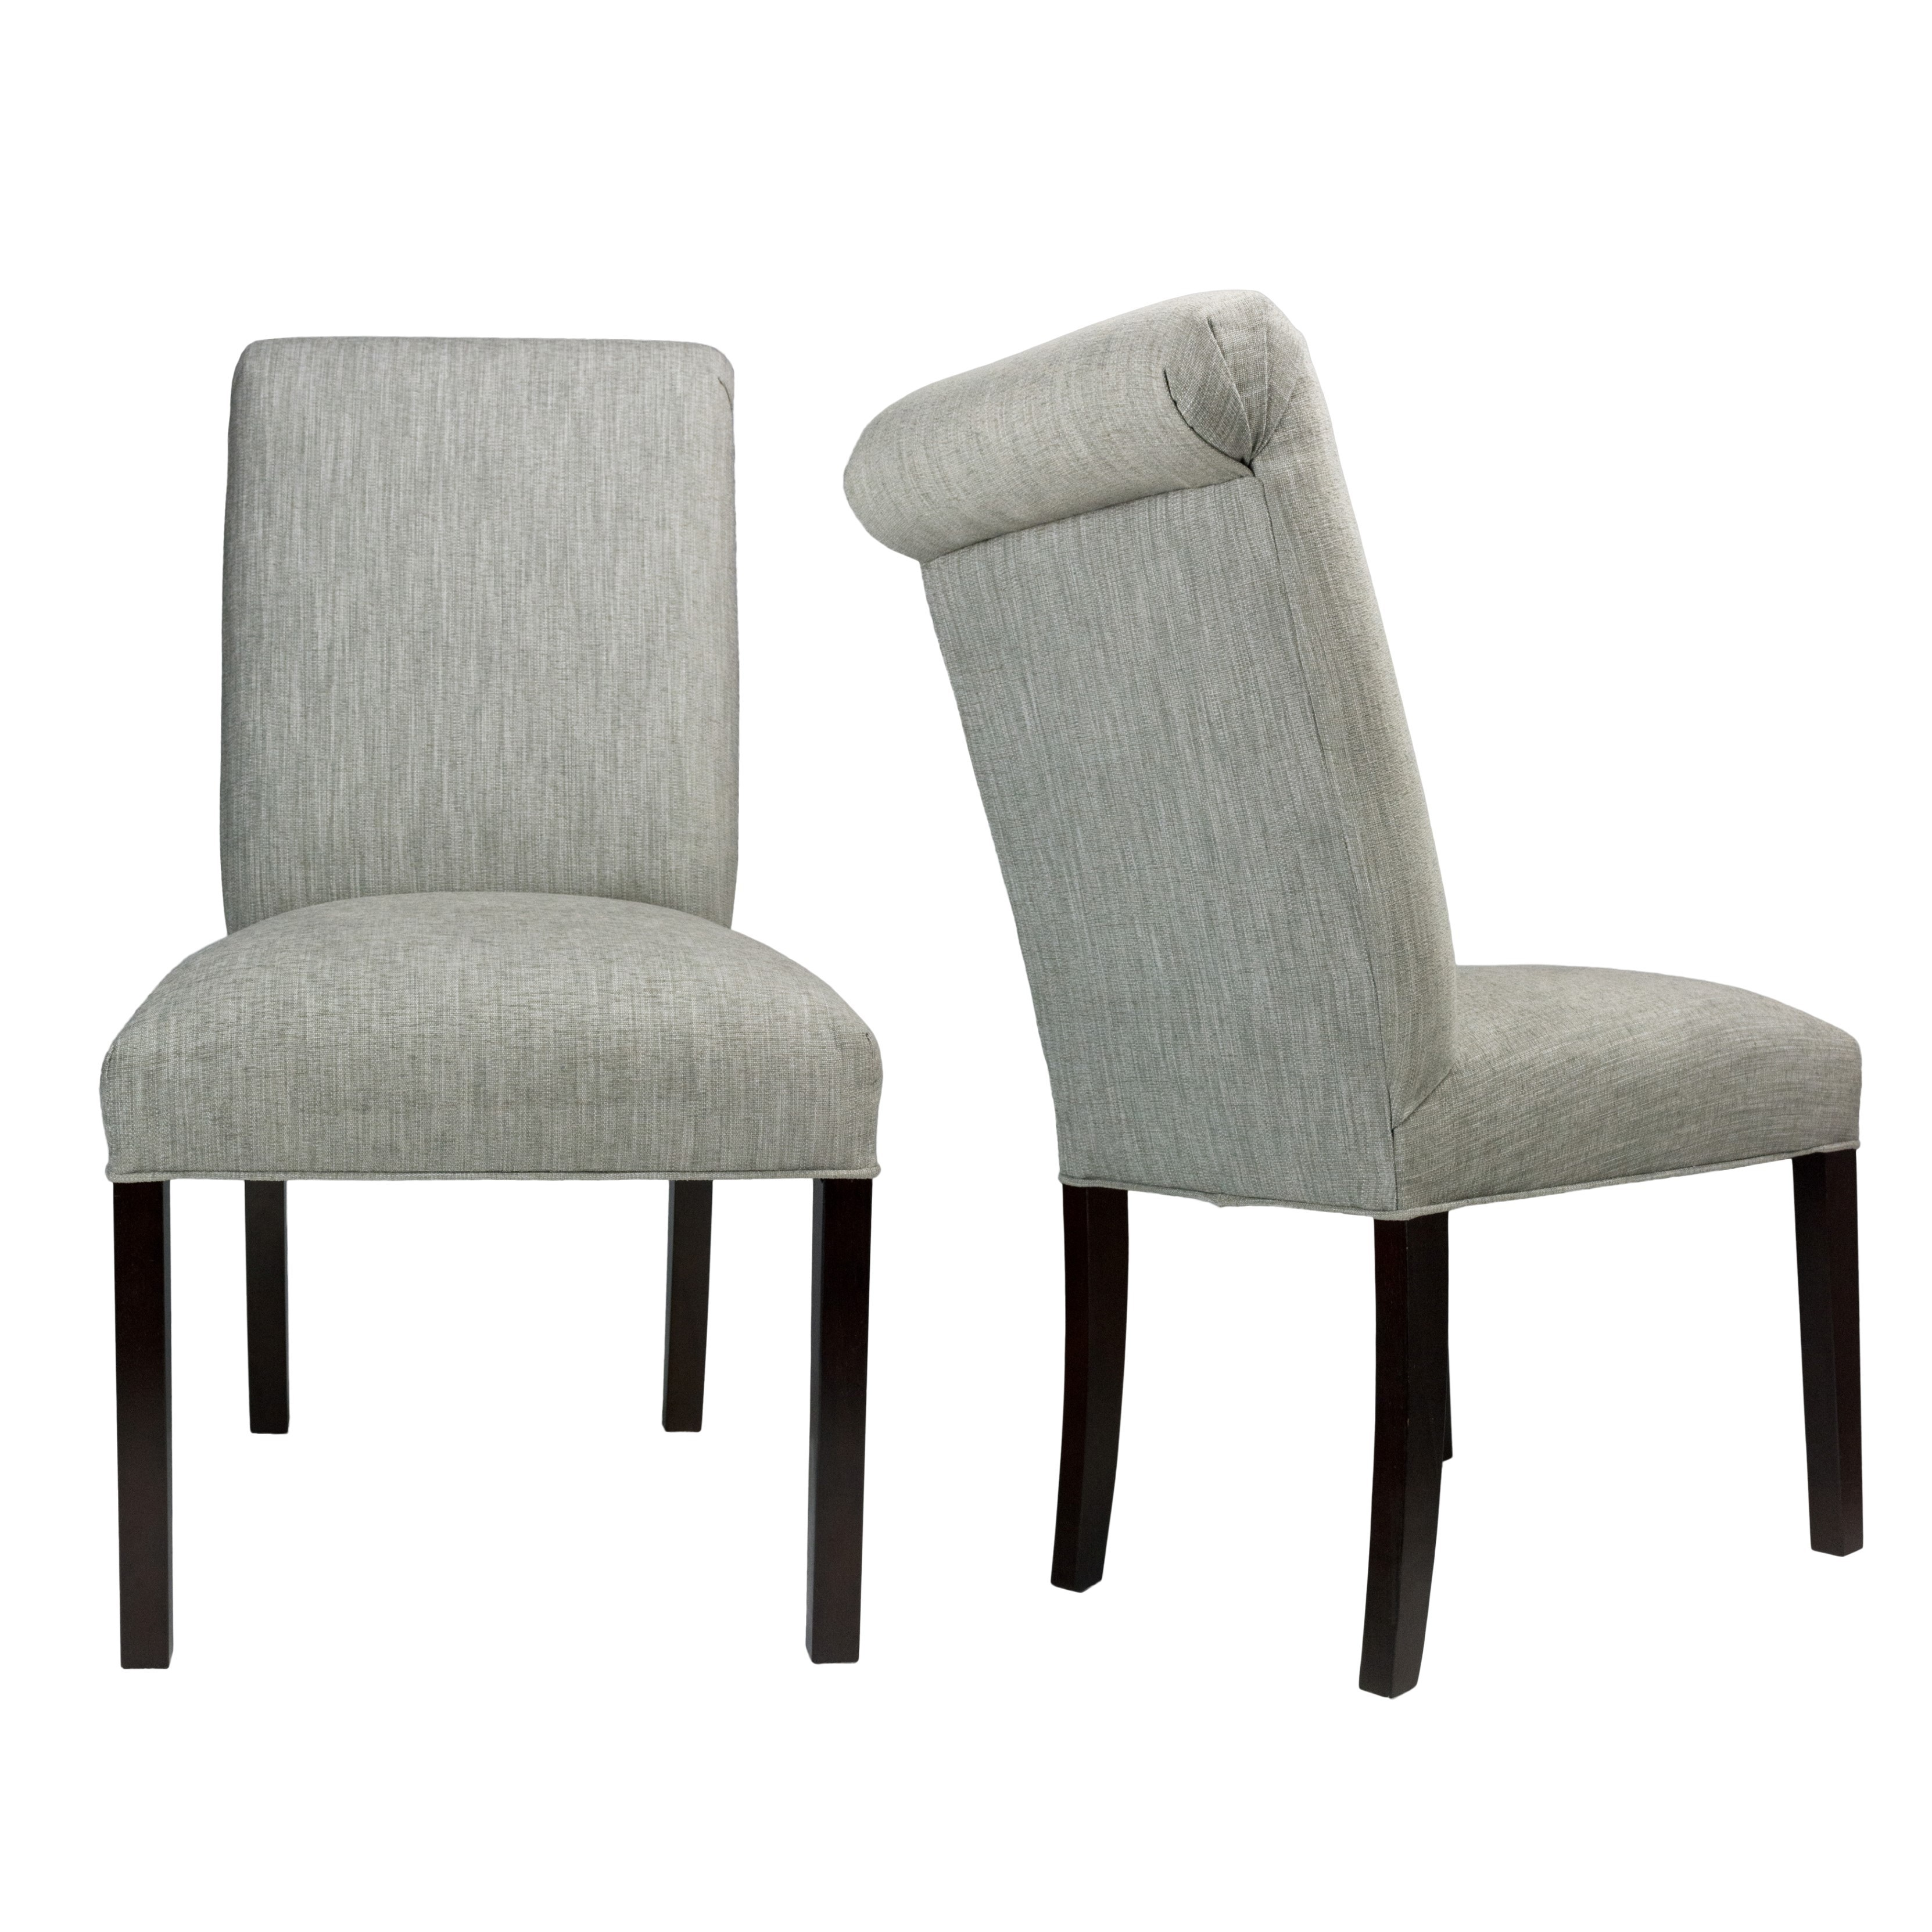 Details About SL3007 Lucky DENIM Spring Seating Double Dow Roll Back  Upholstered Dining Chairs